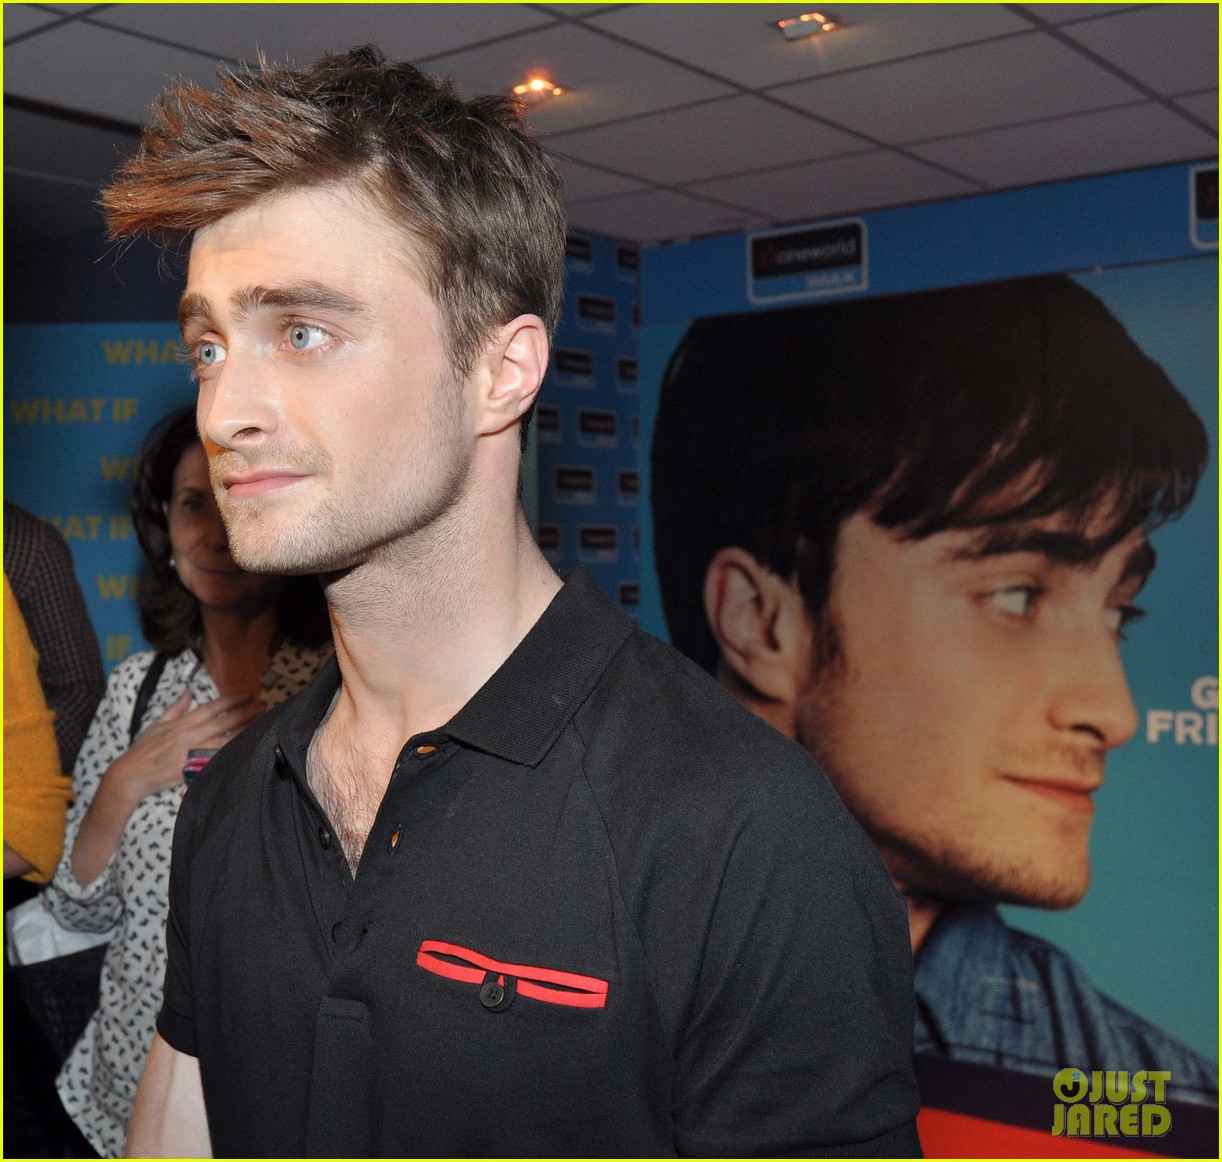 daniel radcliffe pose with fans what if dublin ireland 25